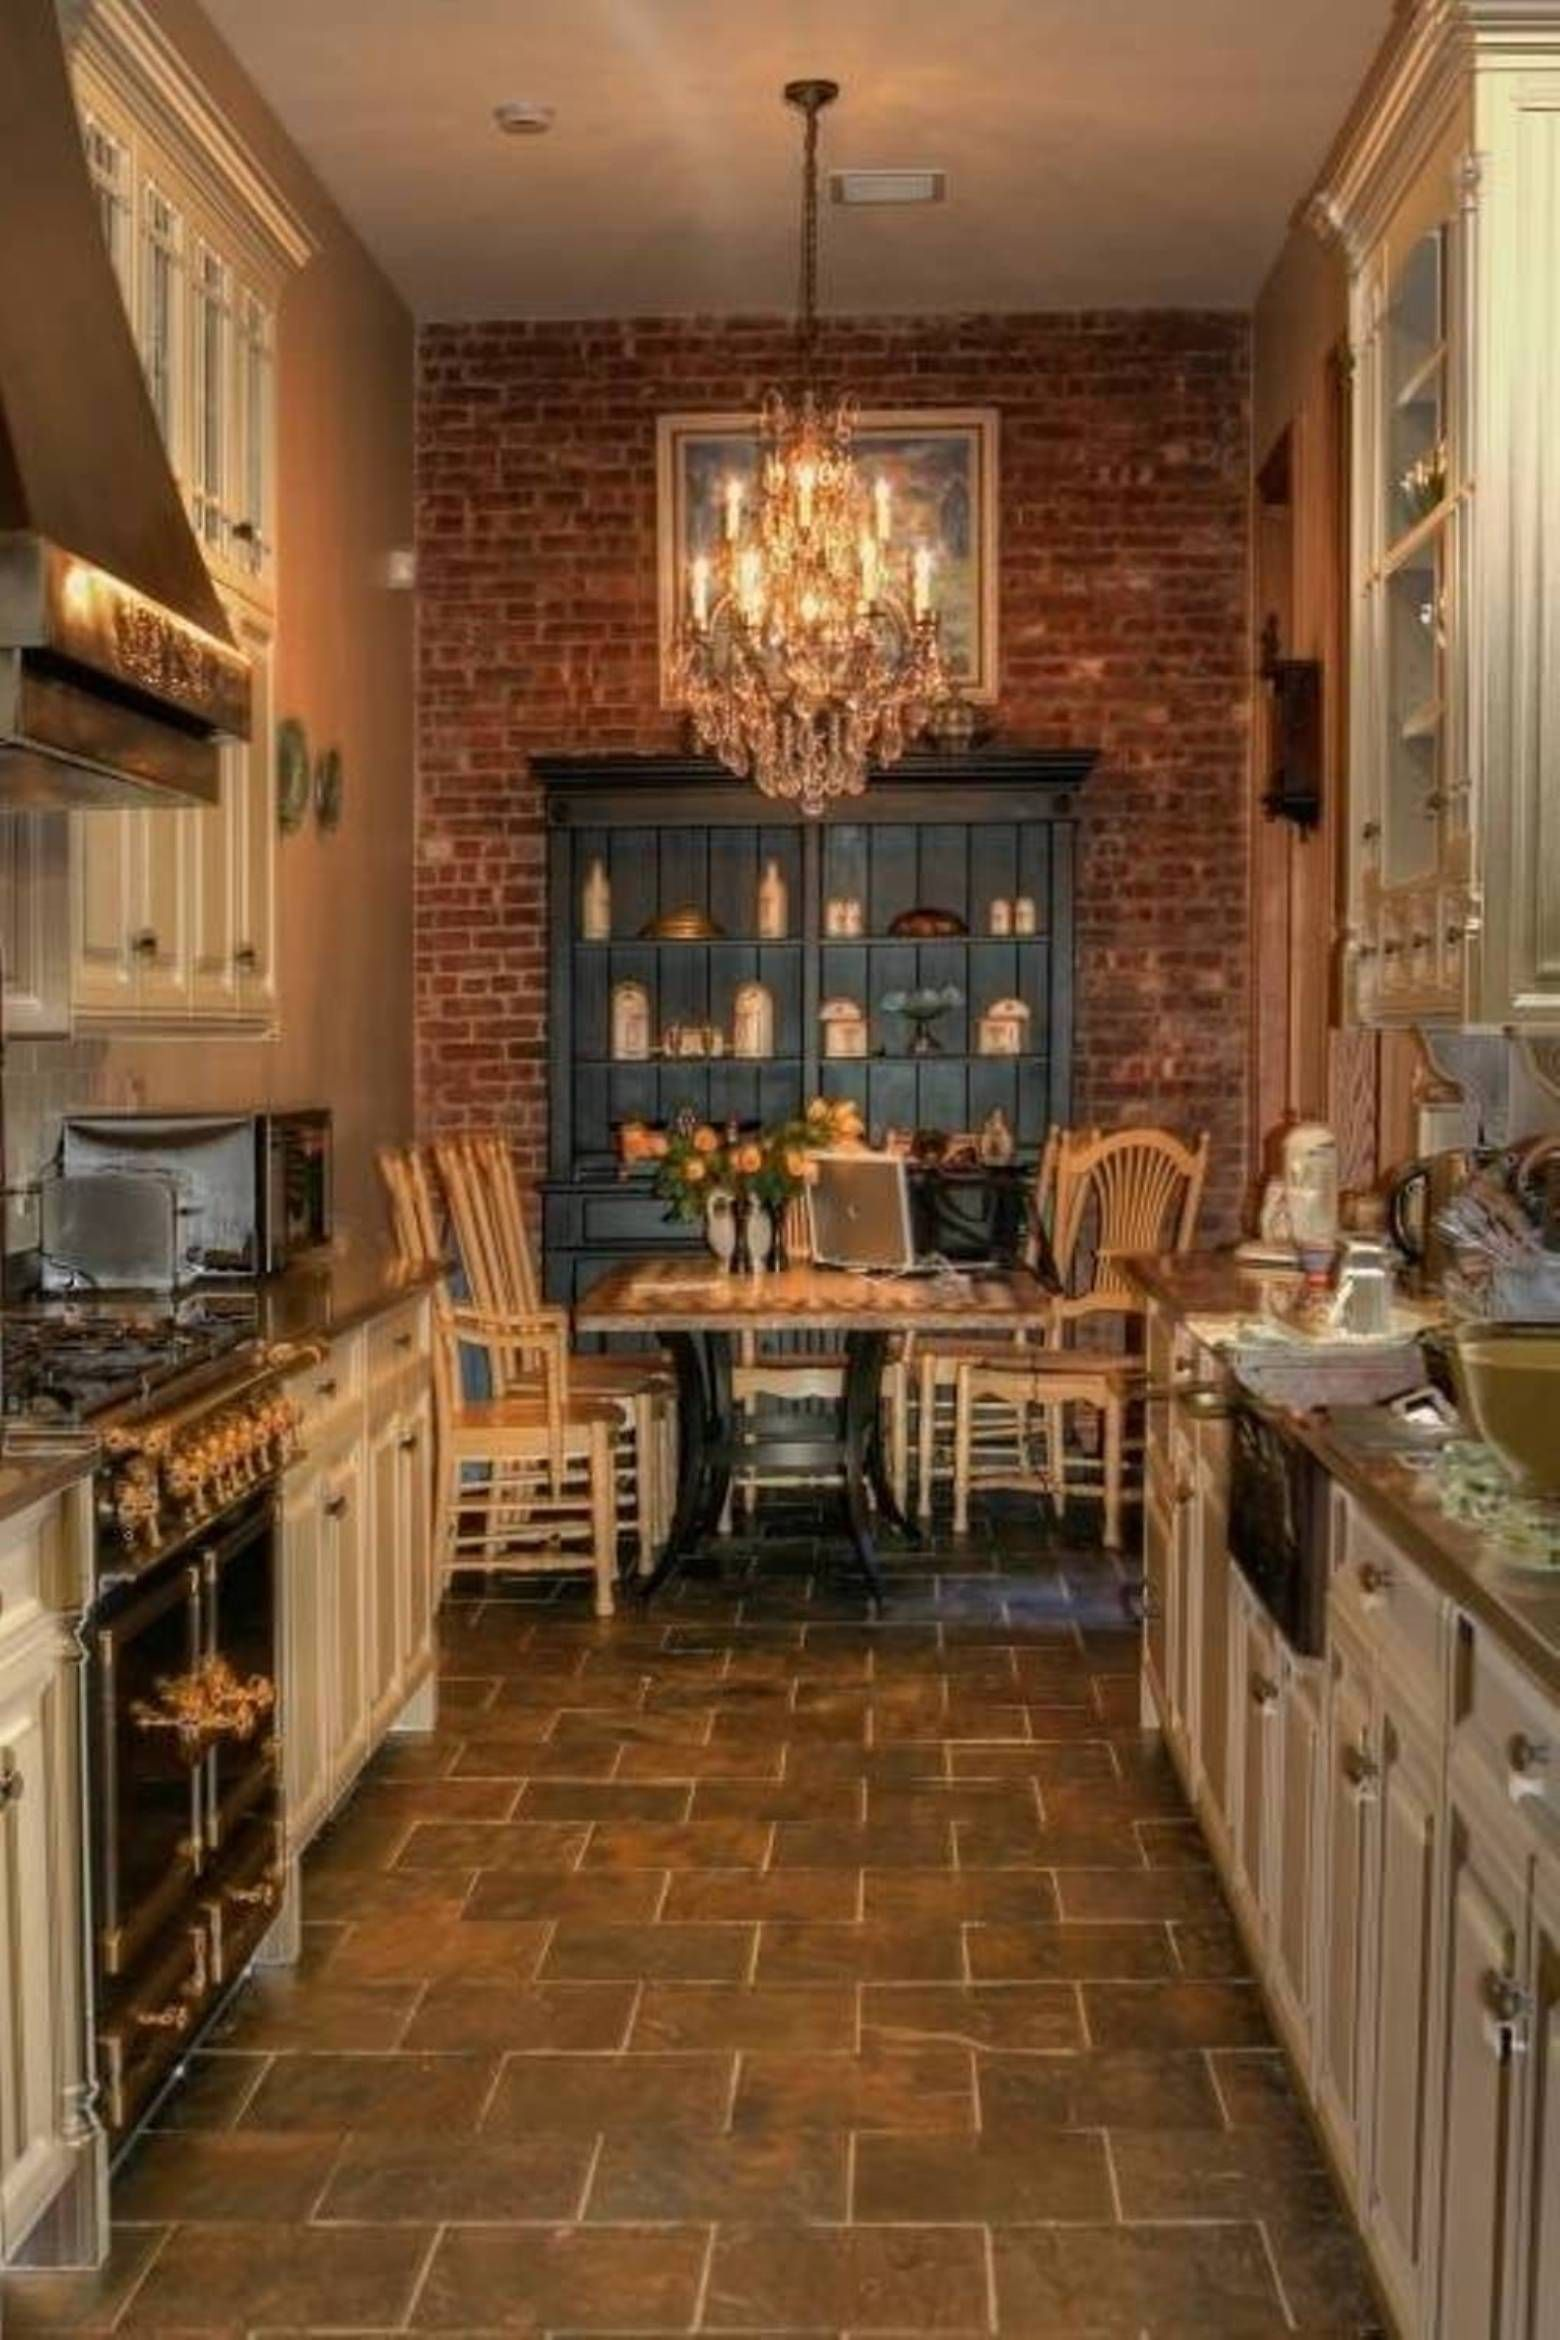 find this pin and more on for the home love this kitchen rustic design - Home And Garden Kitchen Designs